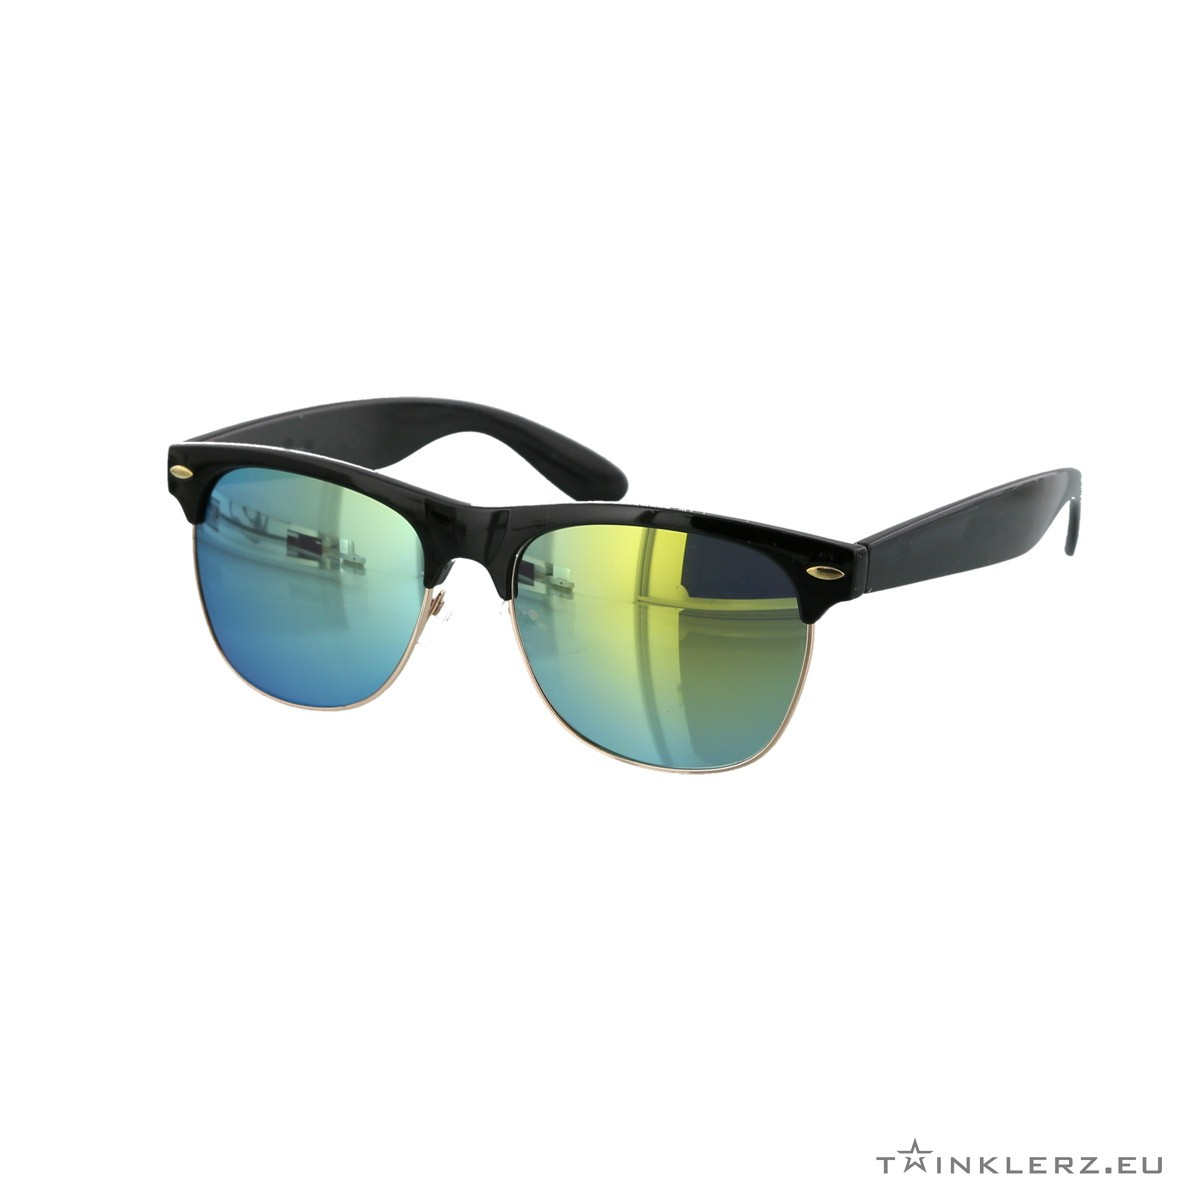 Black clubmaster modern sunglasses yellow green mirrored lenses